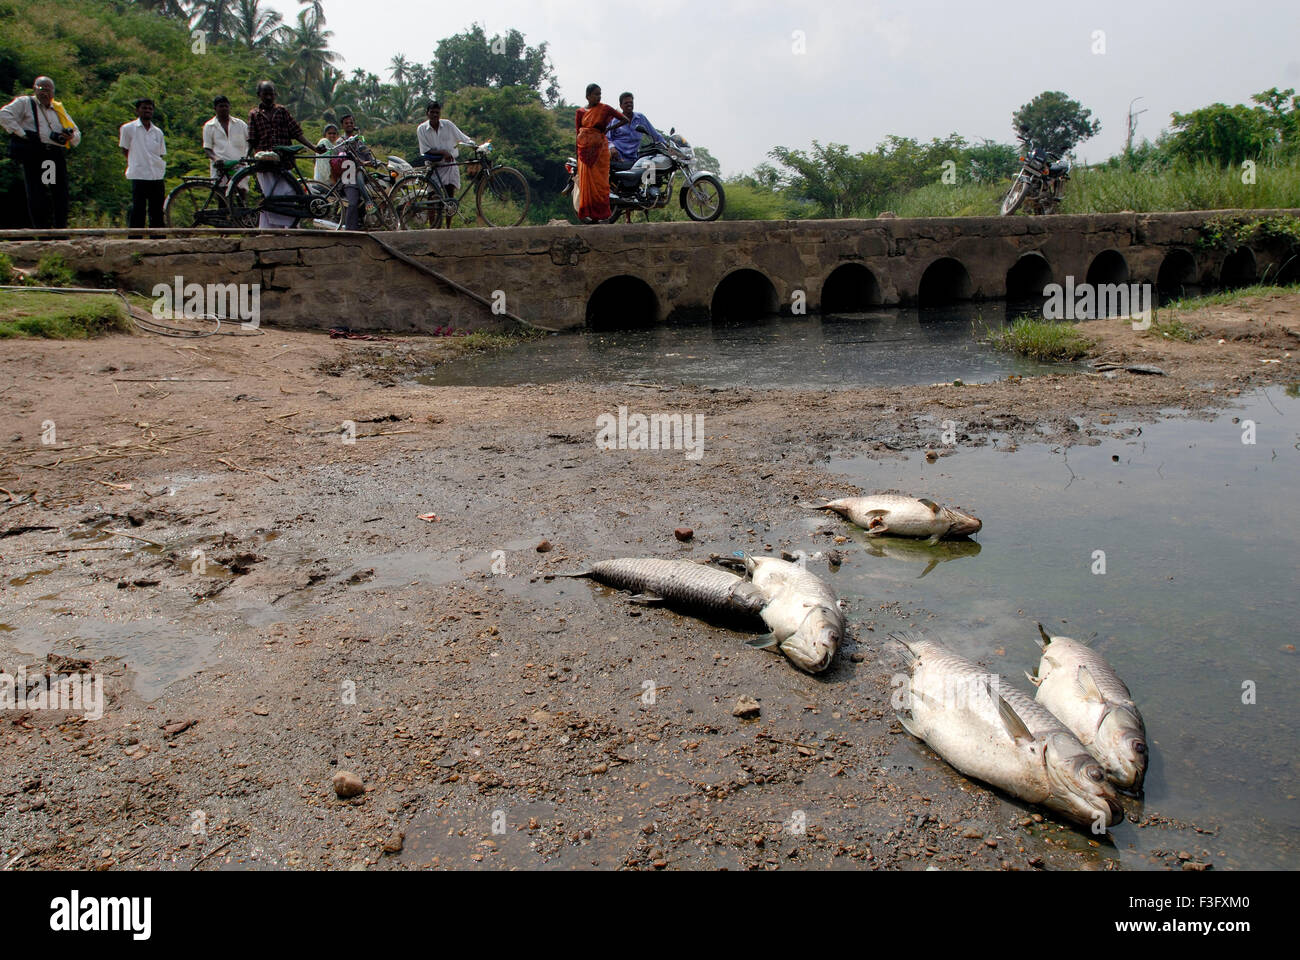 Dead fish on bank of river Noyyal ; Coimbatore ; Tamil Nadu ; India - Stock Image